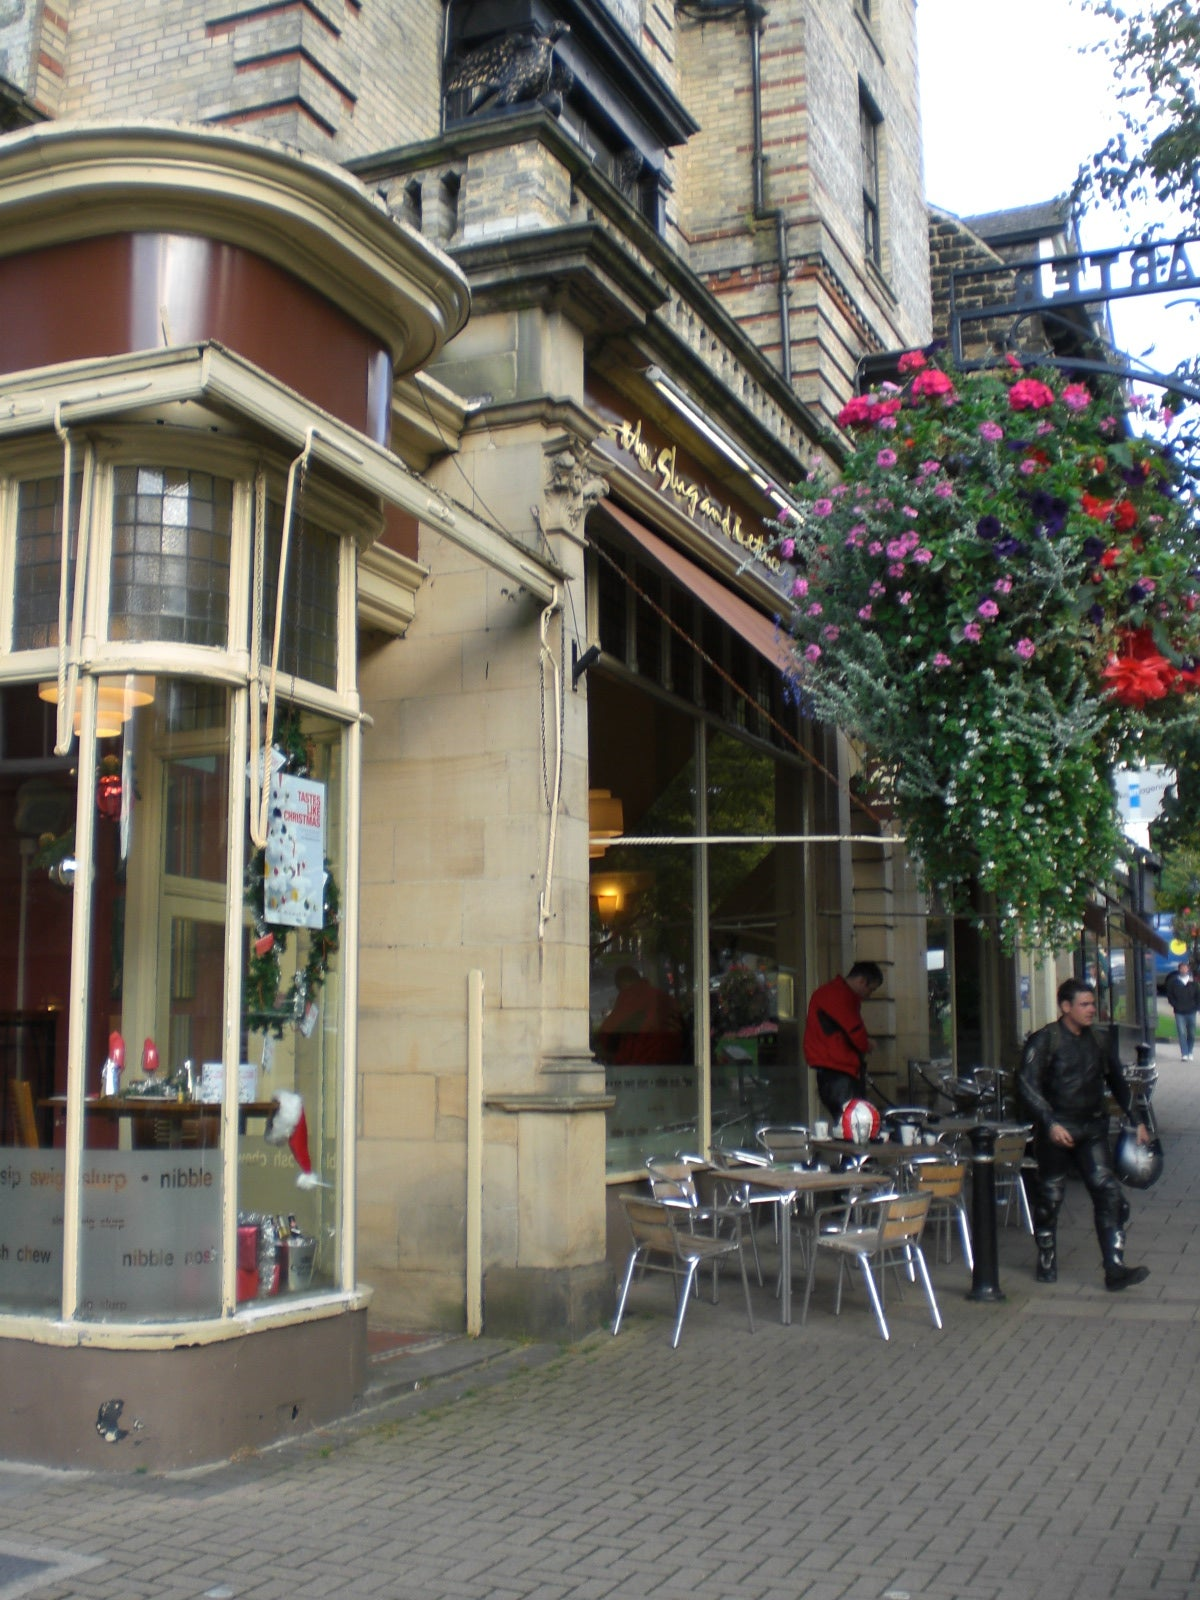 The Slug and Lettuce, Harrogate